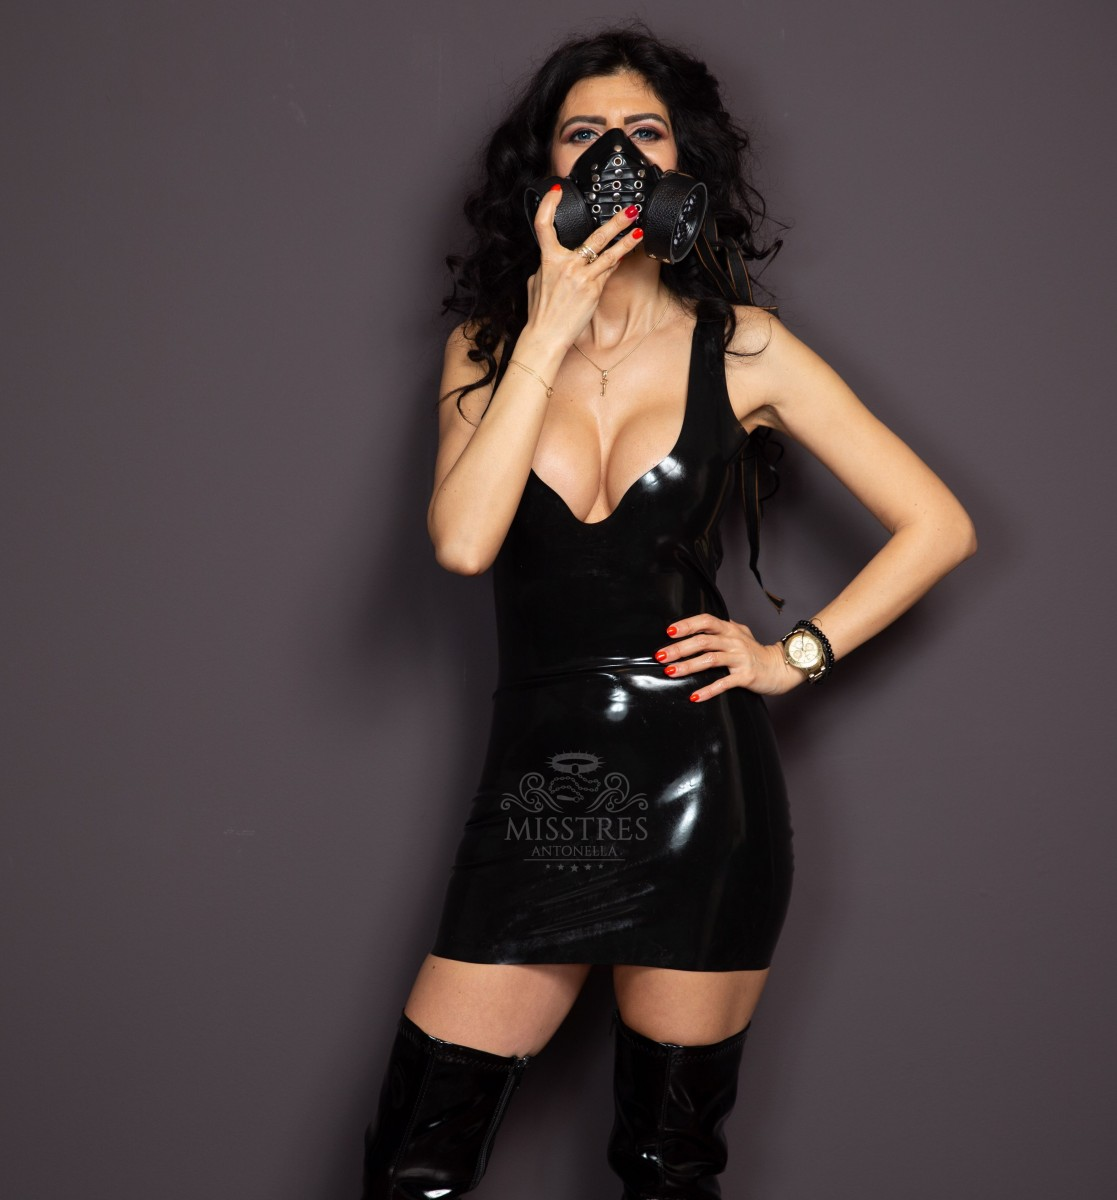 mistress antonella in latex dress with gas mask